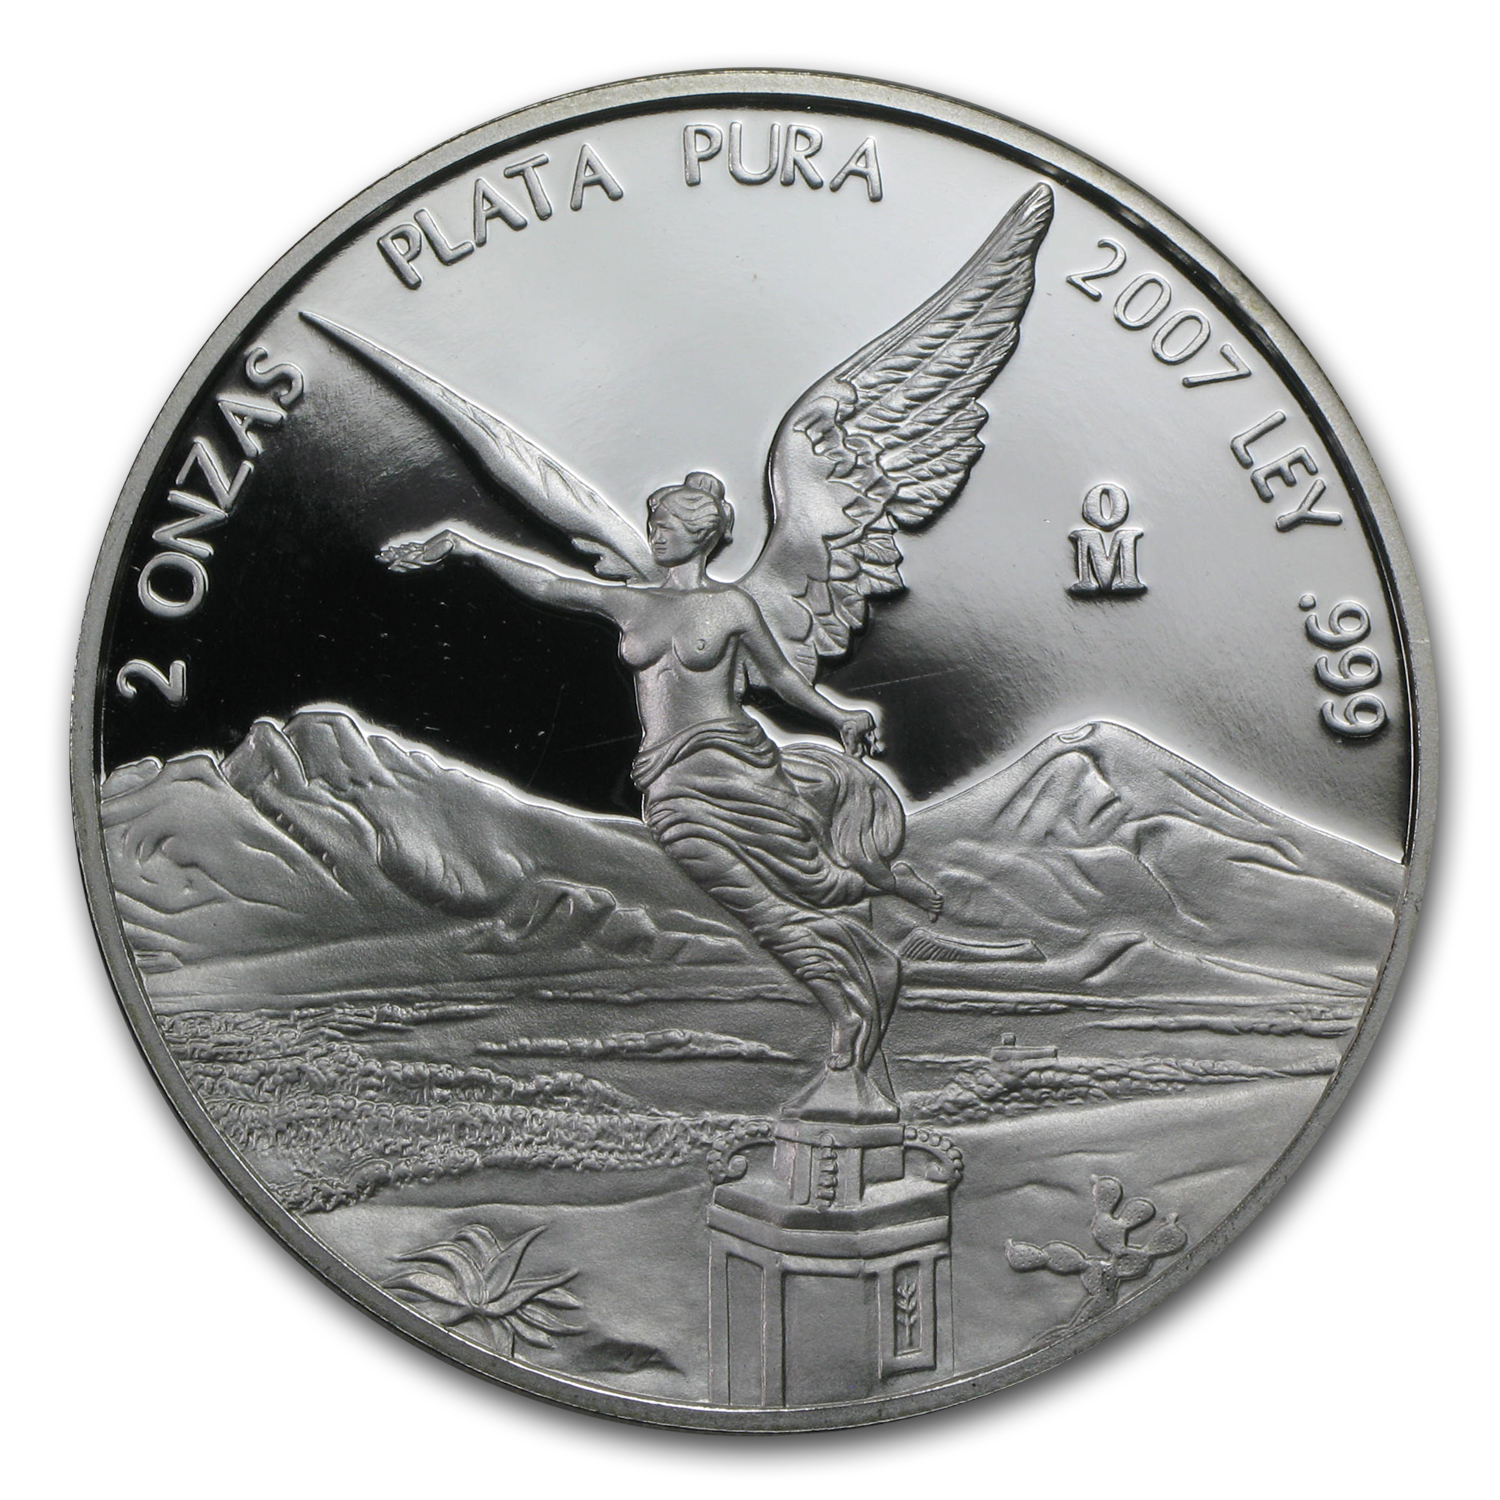 2007 2 oz Silver Mexican Libertad - Proof